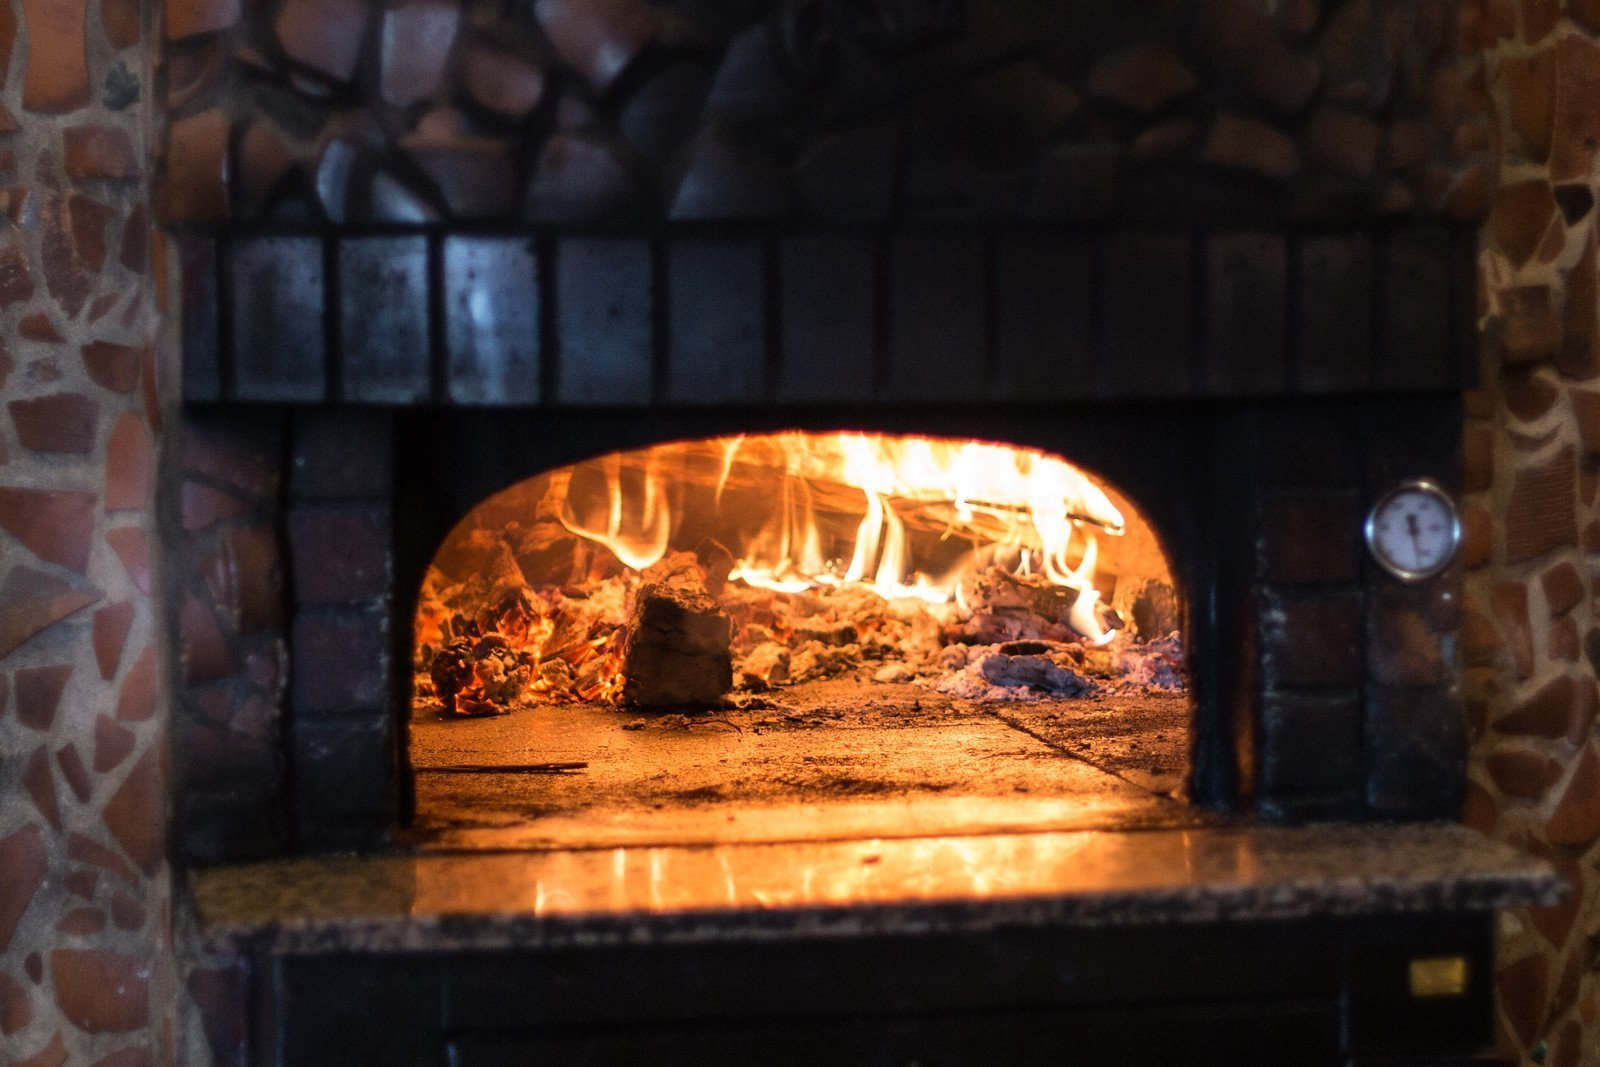 Fireplace at La Cantina, Italian Ristorante in Hamilton